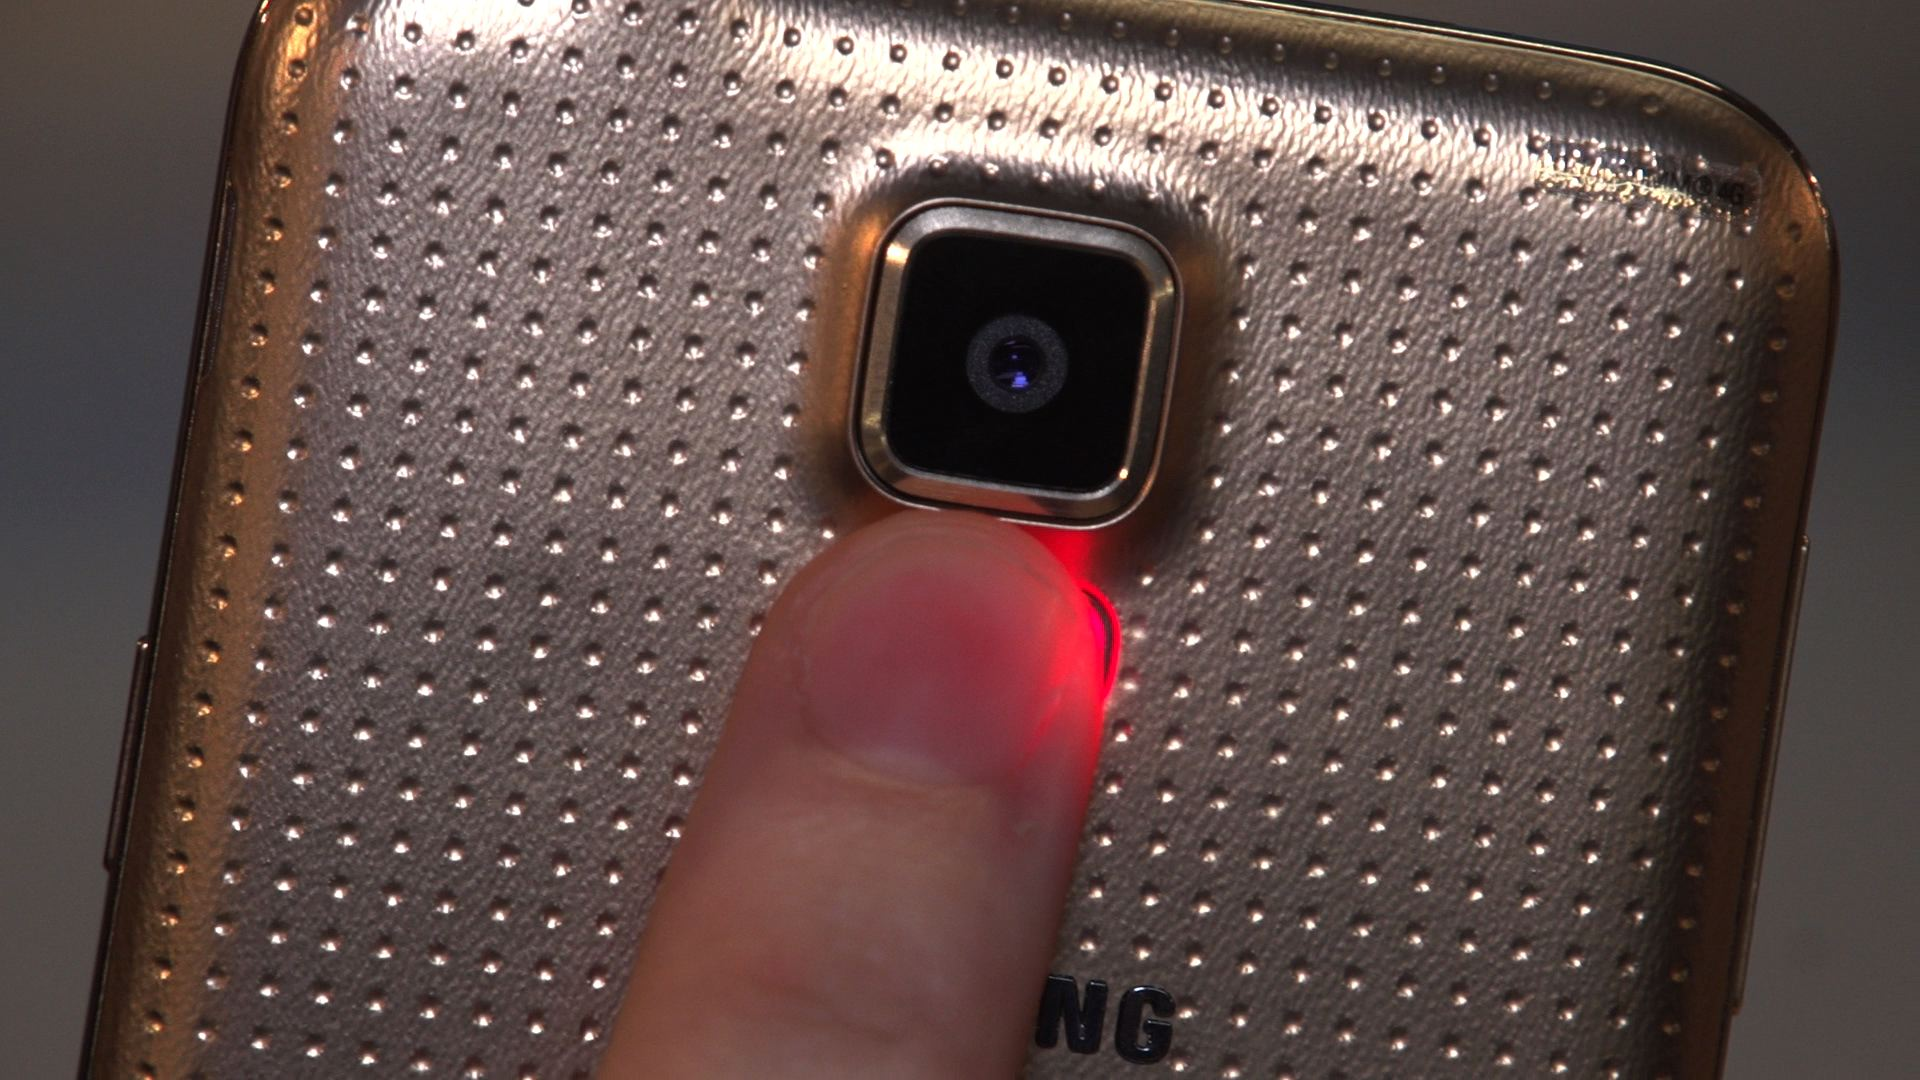 Video: Galaxy S5 fingerprint scanner and heart rate monitor explained